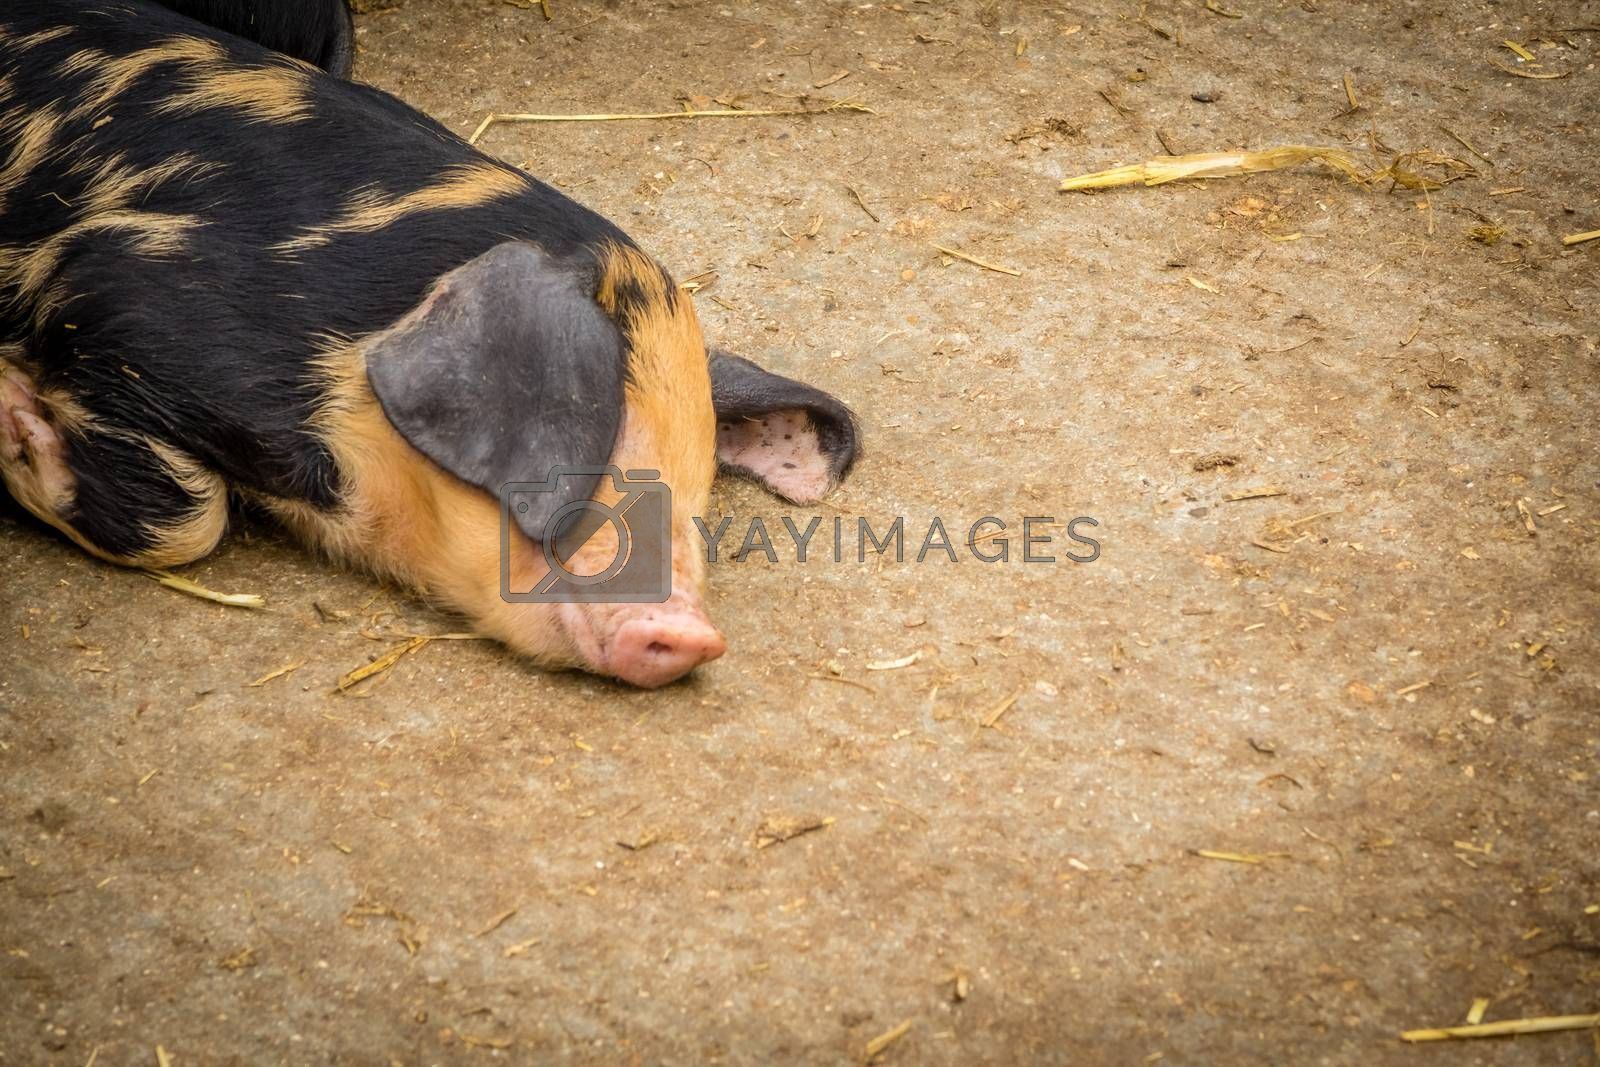 Pig sleeping on the ground in a barn